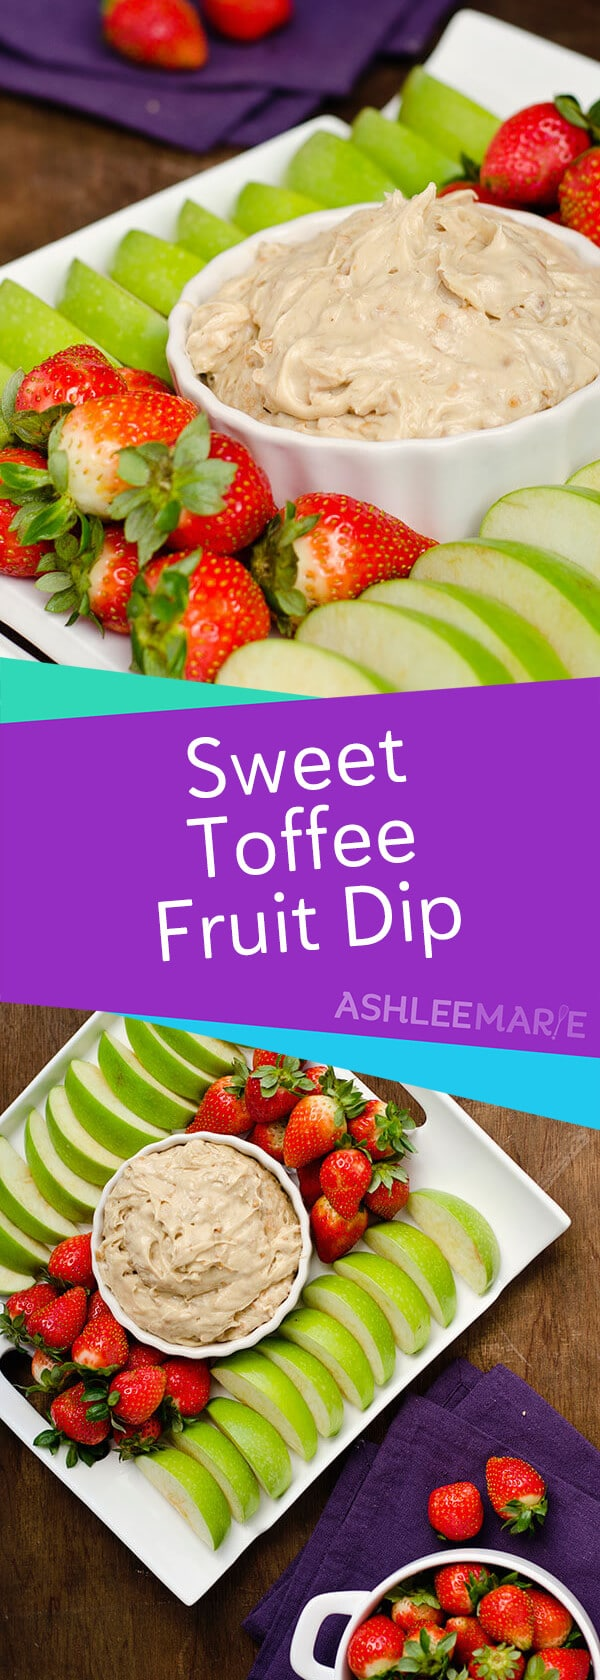 Easy Toffee Fruit Dip